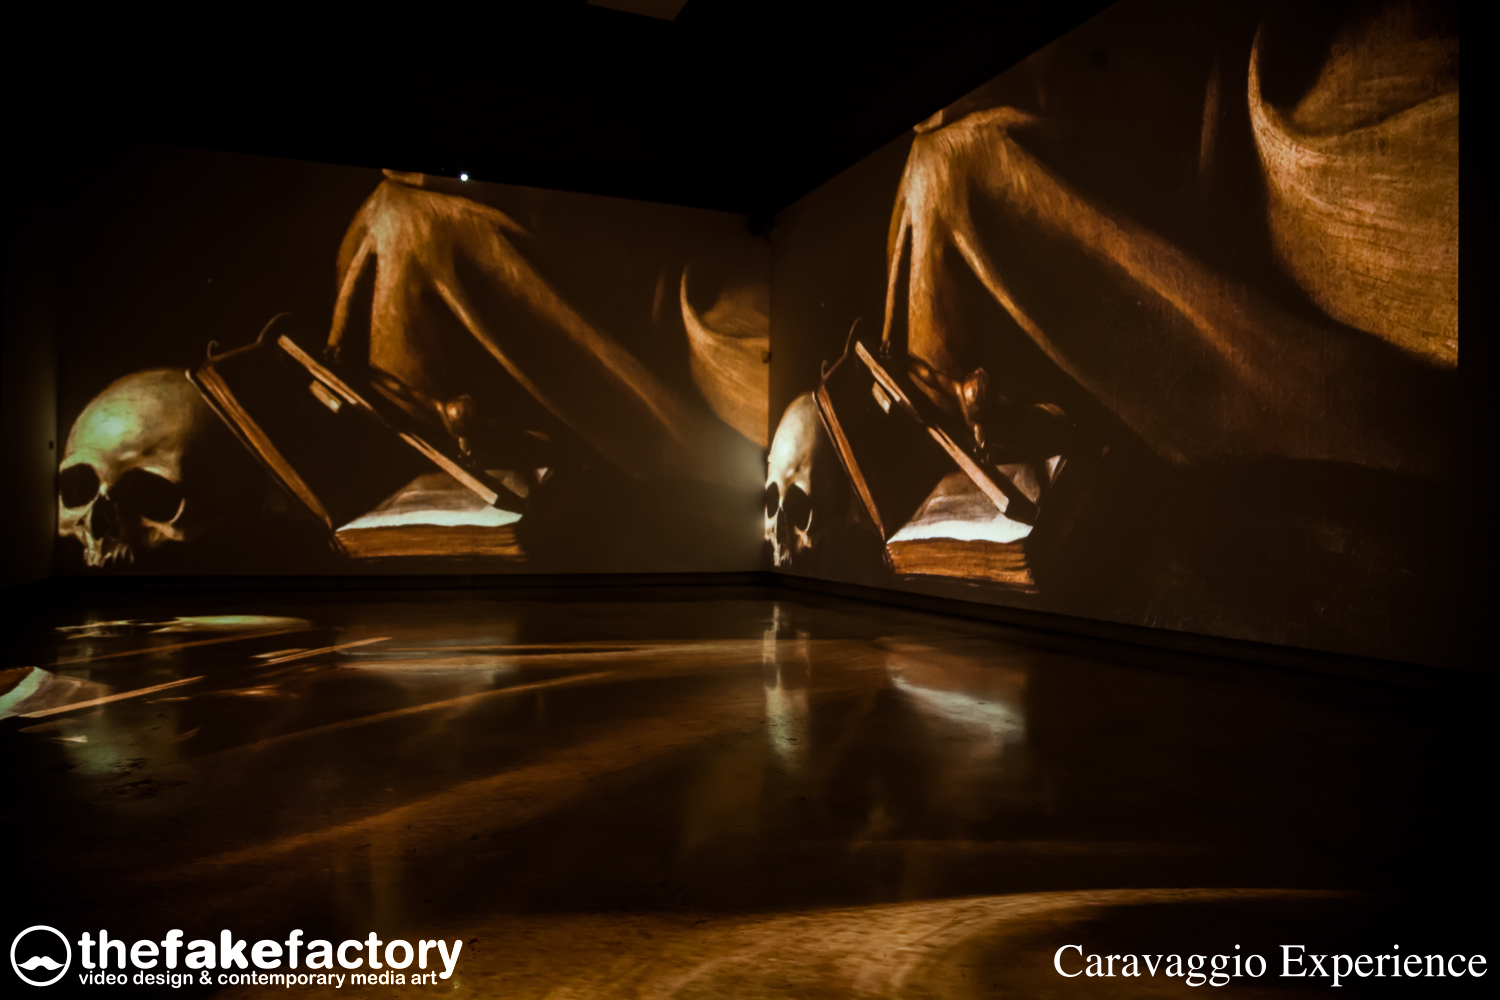 CARAVAGGIO EXPERIENCE THE FAKE FACTORY 2_00024 & CARAVAGGIO EXPERIENCE THE FAKE FACTORY 2_00024 | Stefano Fake